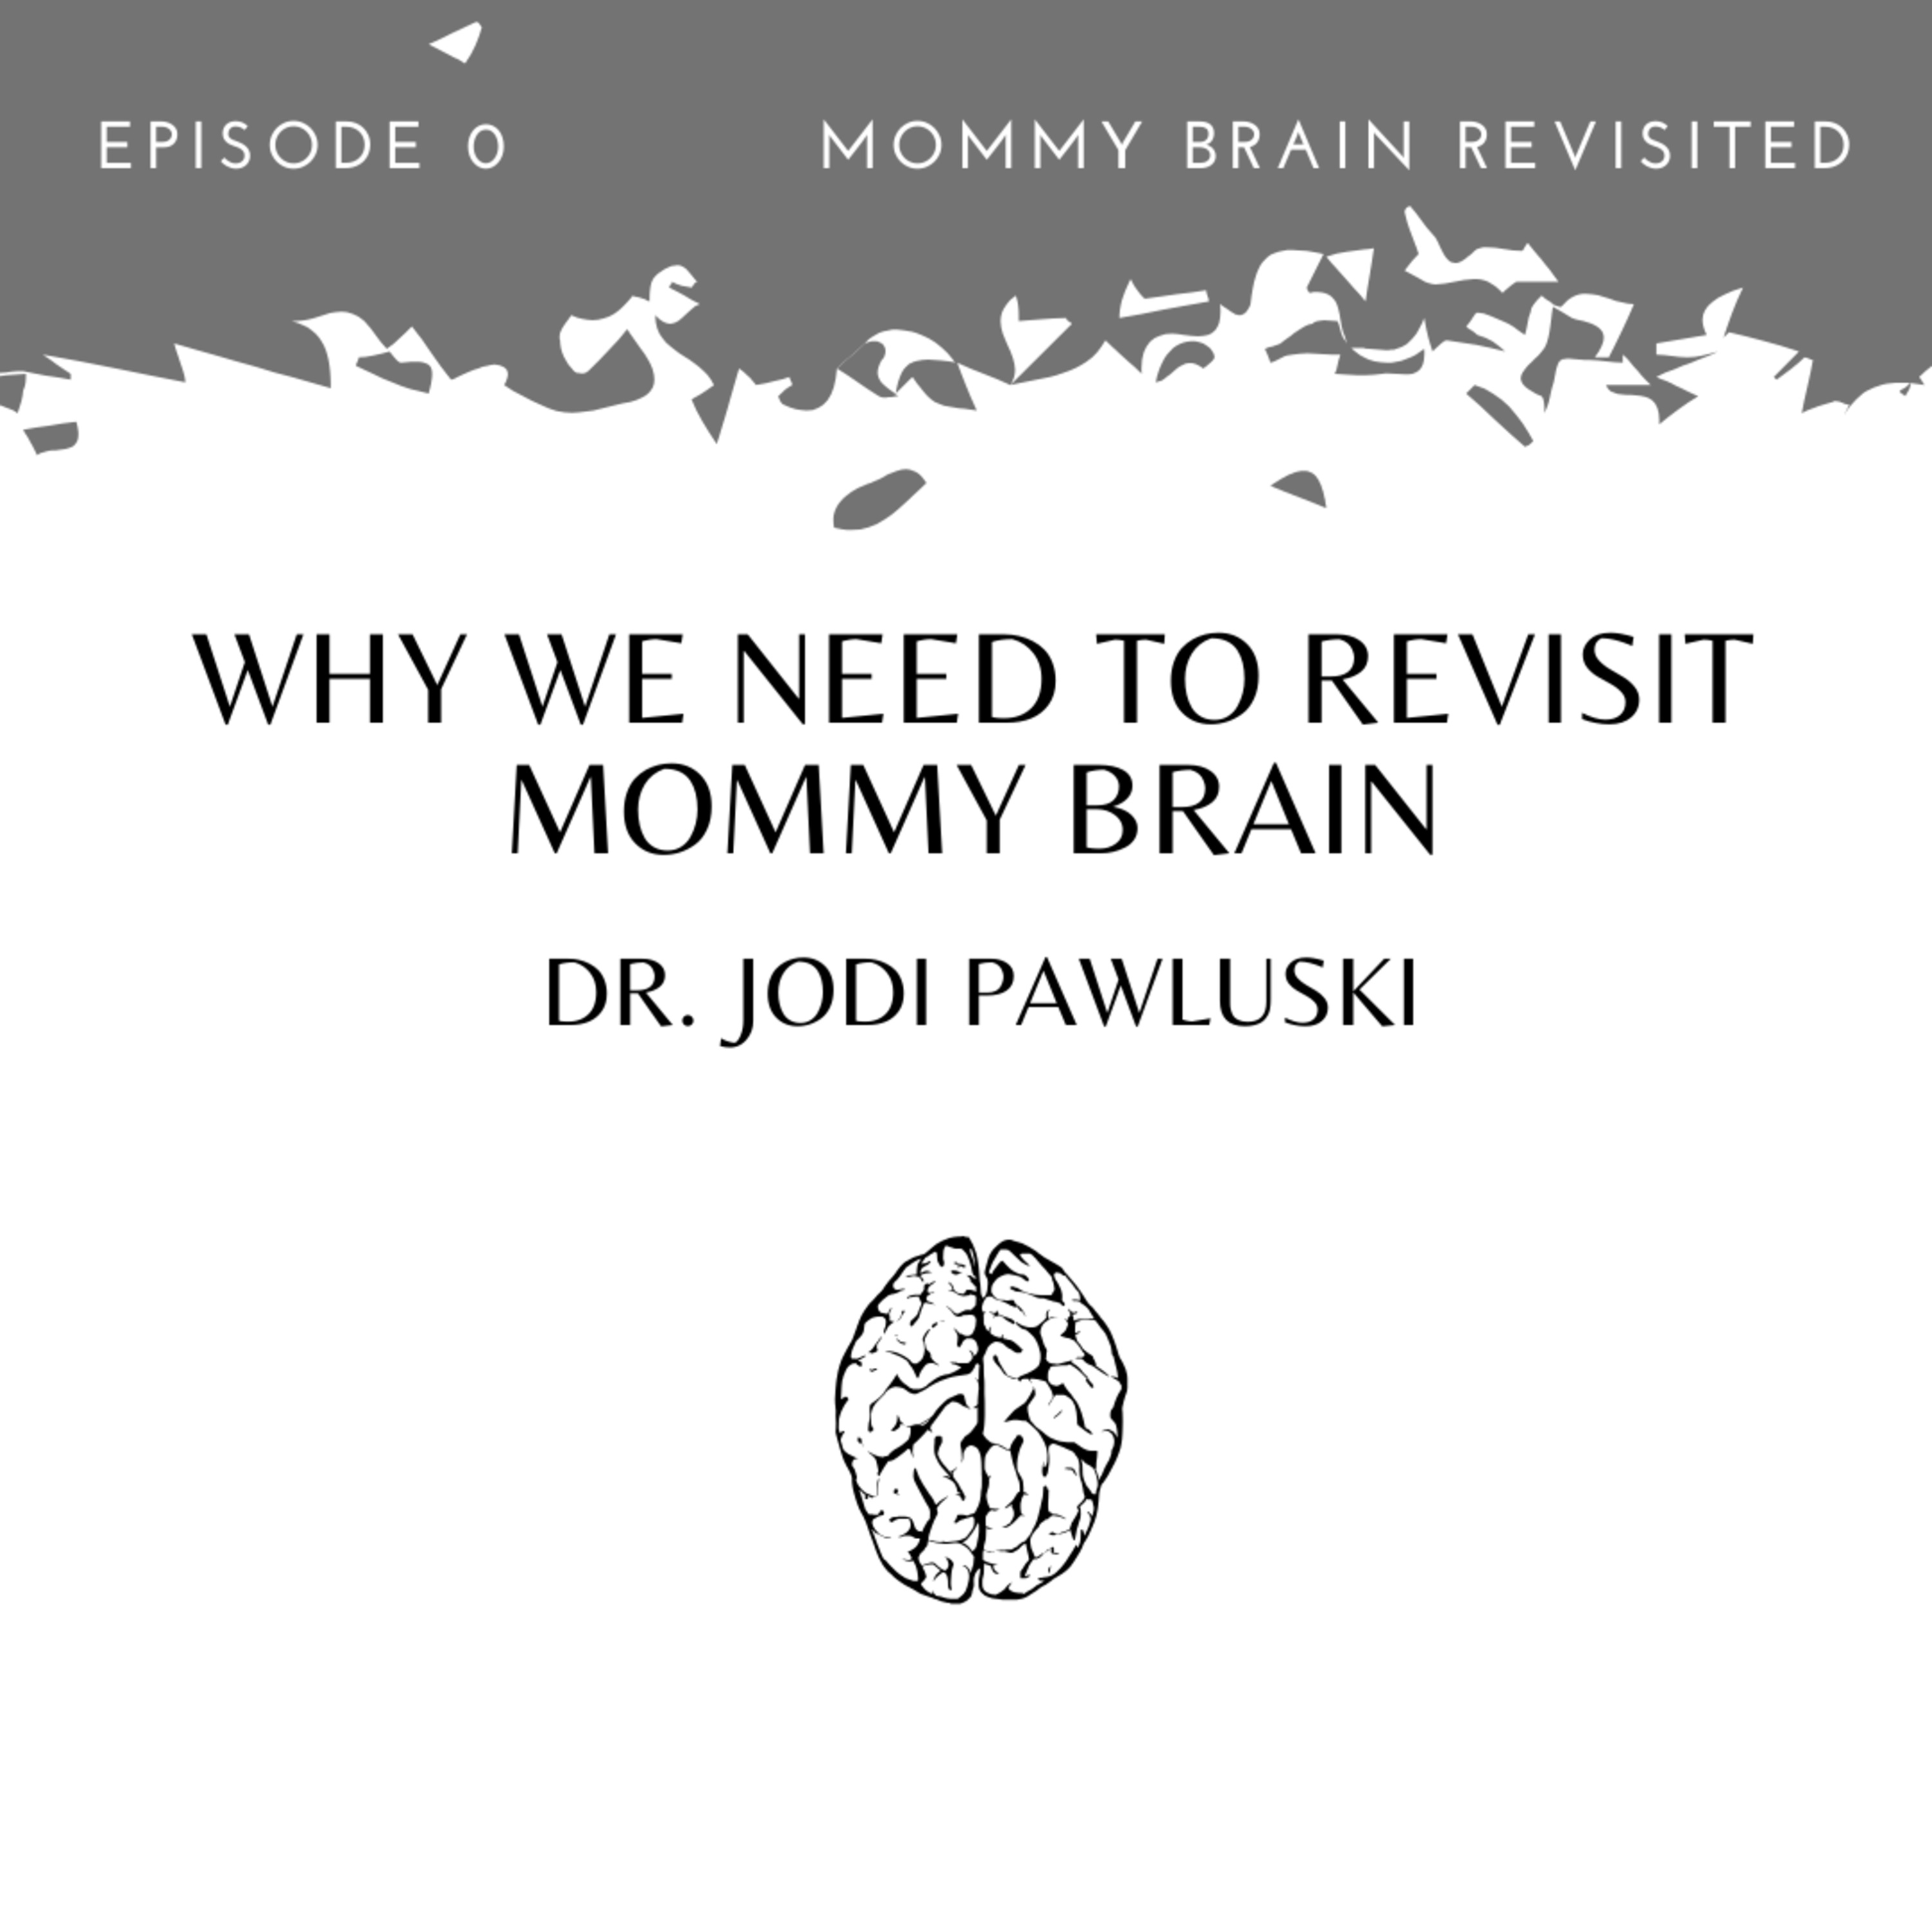 Why we need to revisit Mommy Brain